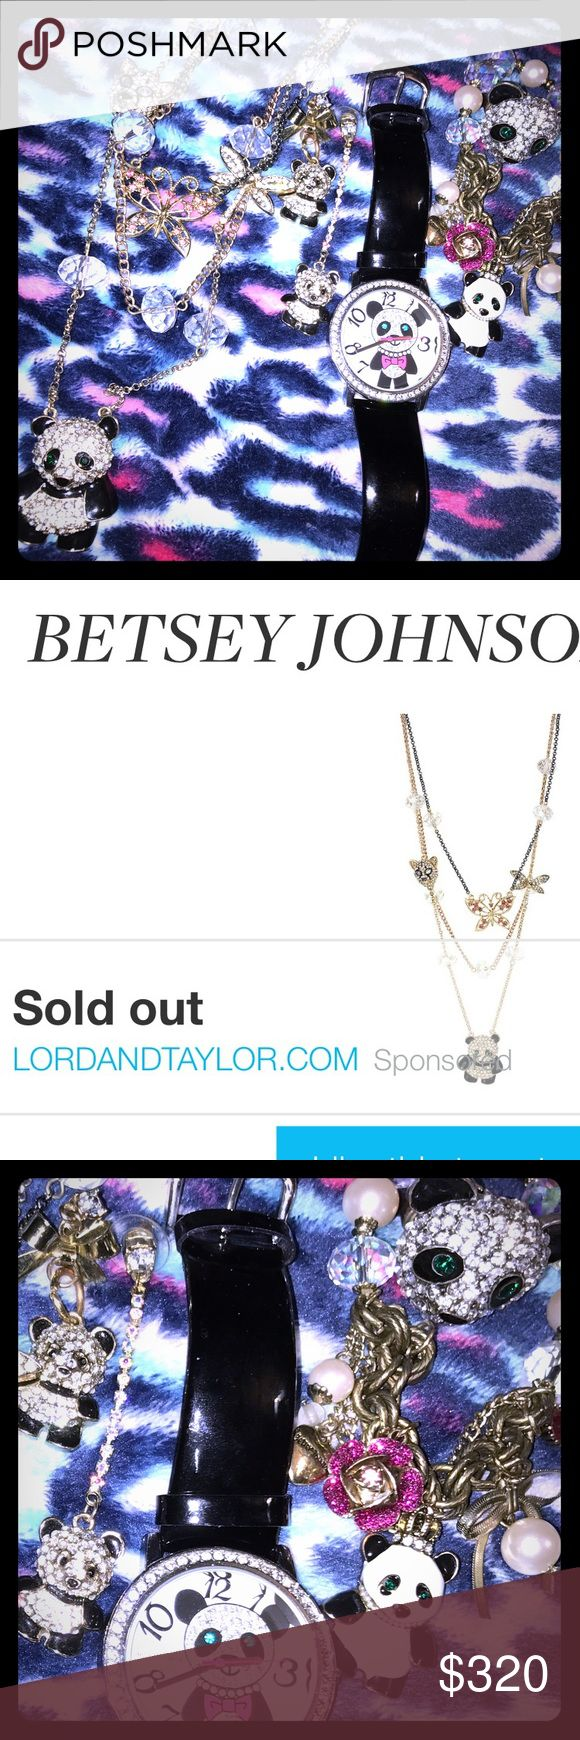 "COMPLETE betsey Johnson jewelers collection""read😁 Real sold out 3 rowed betsey neckless. Real authentic bj panda ring signature with diamond on in side. Real betsey genuine leather panda watch matching. Along with original matching earrings to this set. Bracelet is authentic but is not the exact matching one to this panda line still looking for 3 row bracelet that would really complete this collection. I'm not sure how much I want to sell this set for it took me a year to actually get every…"